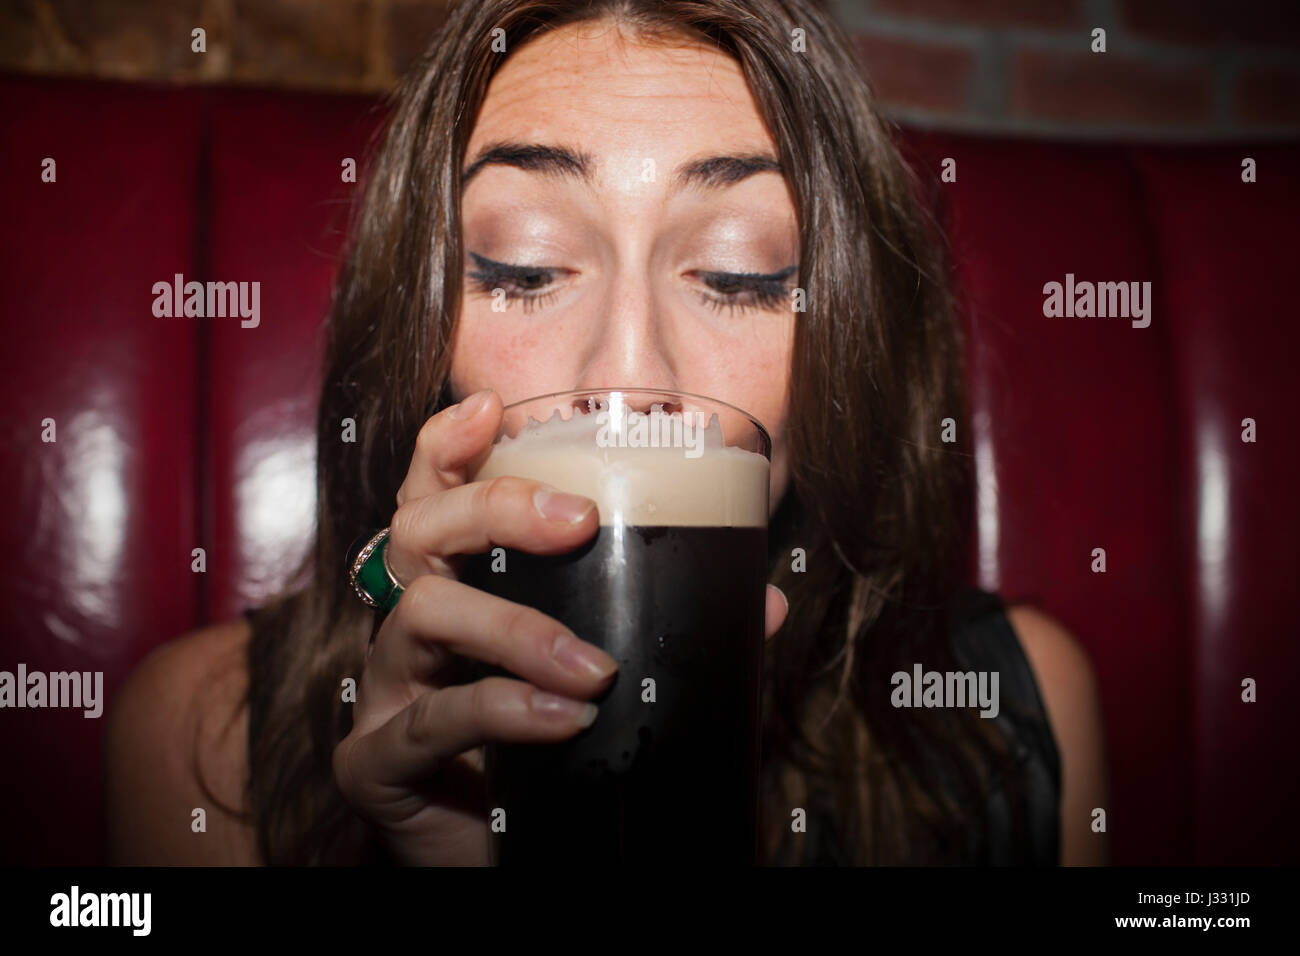 Young woman enjoying a drink - Stock Image